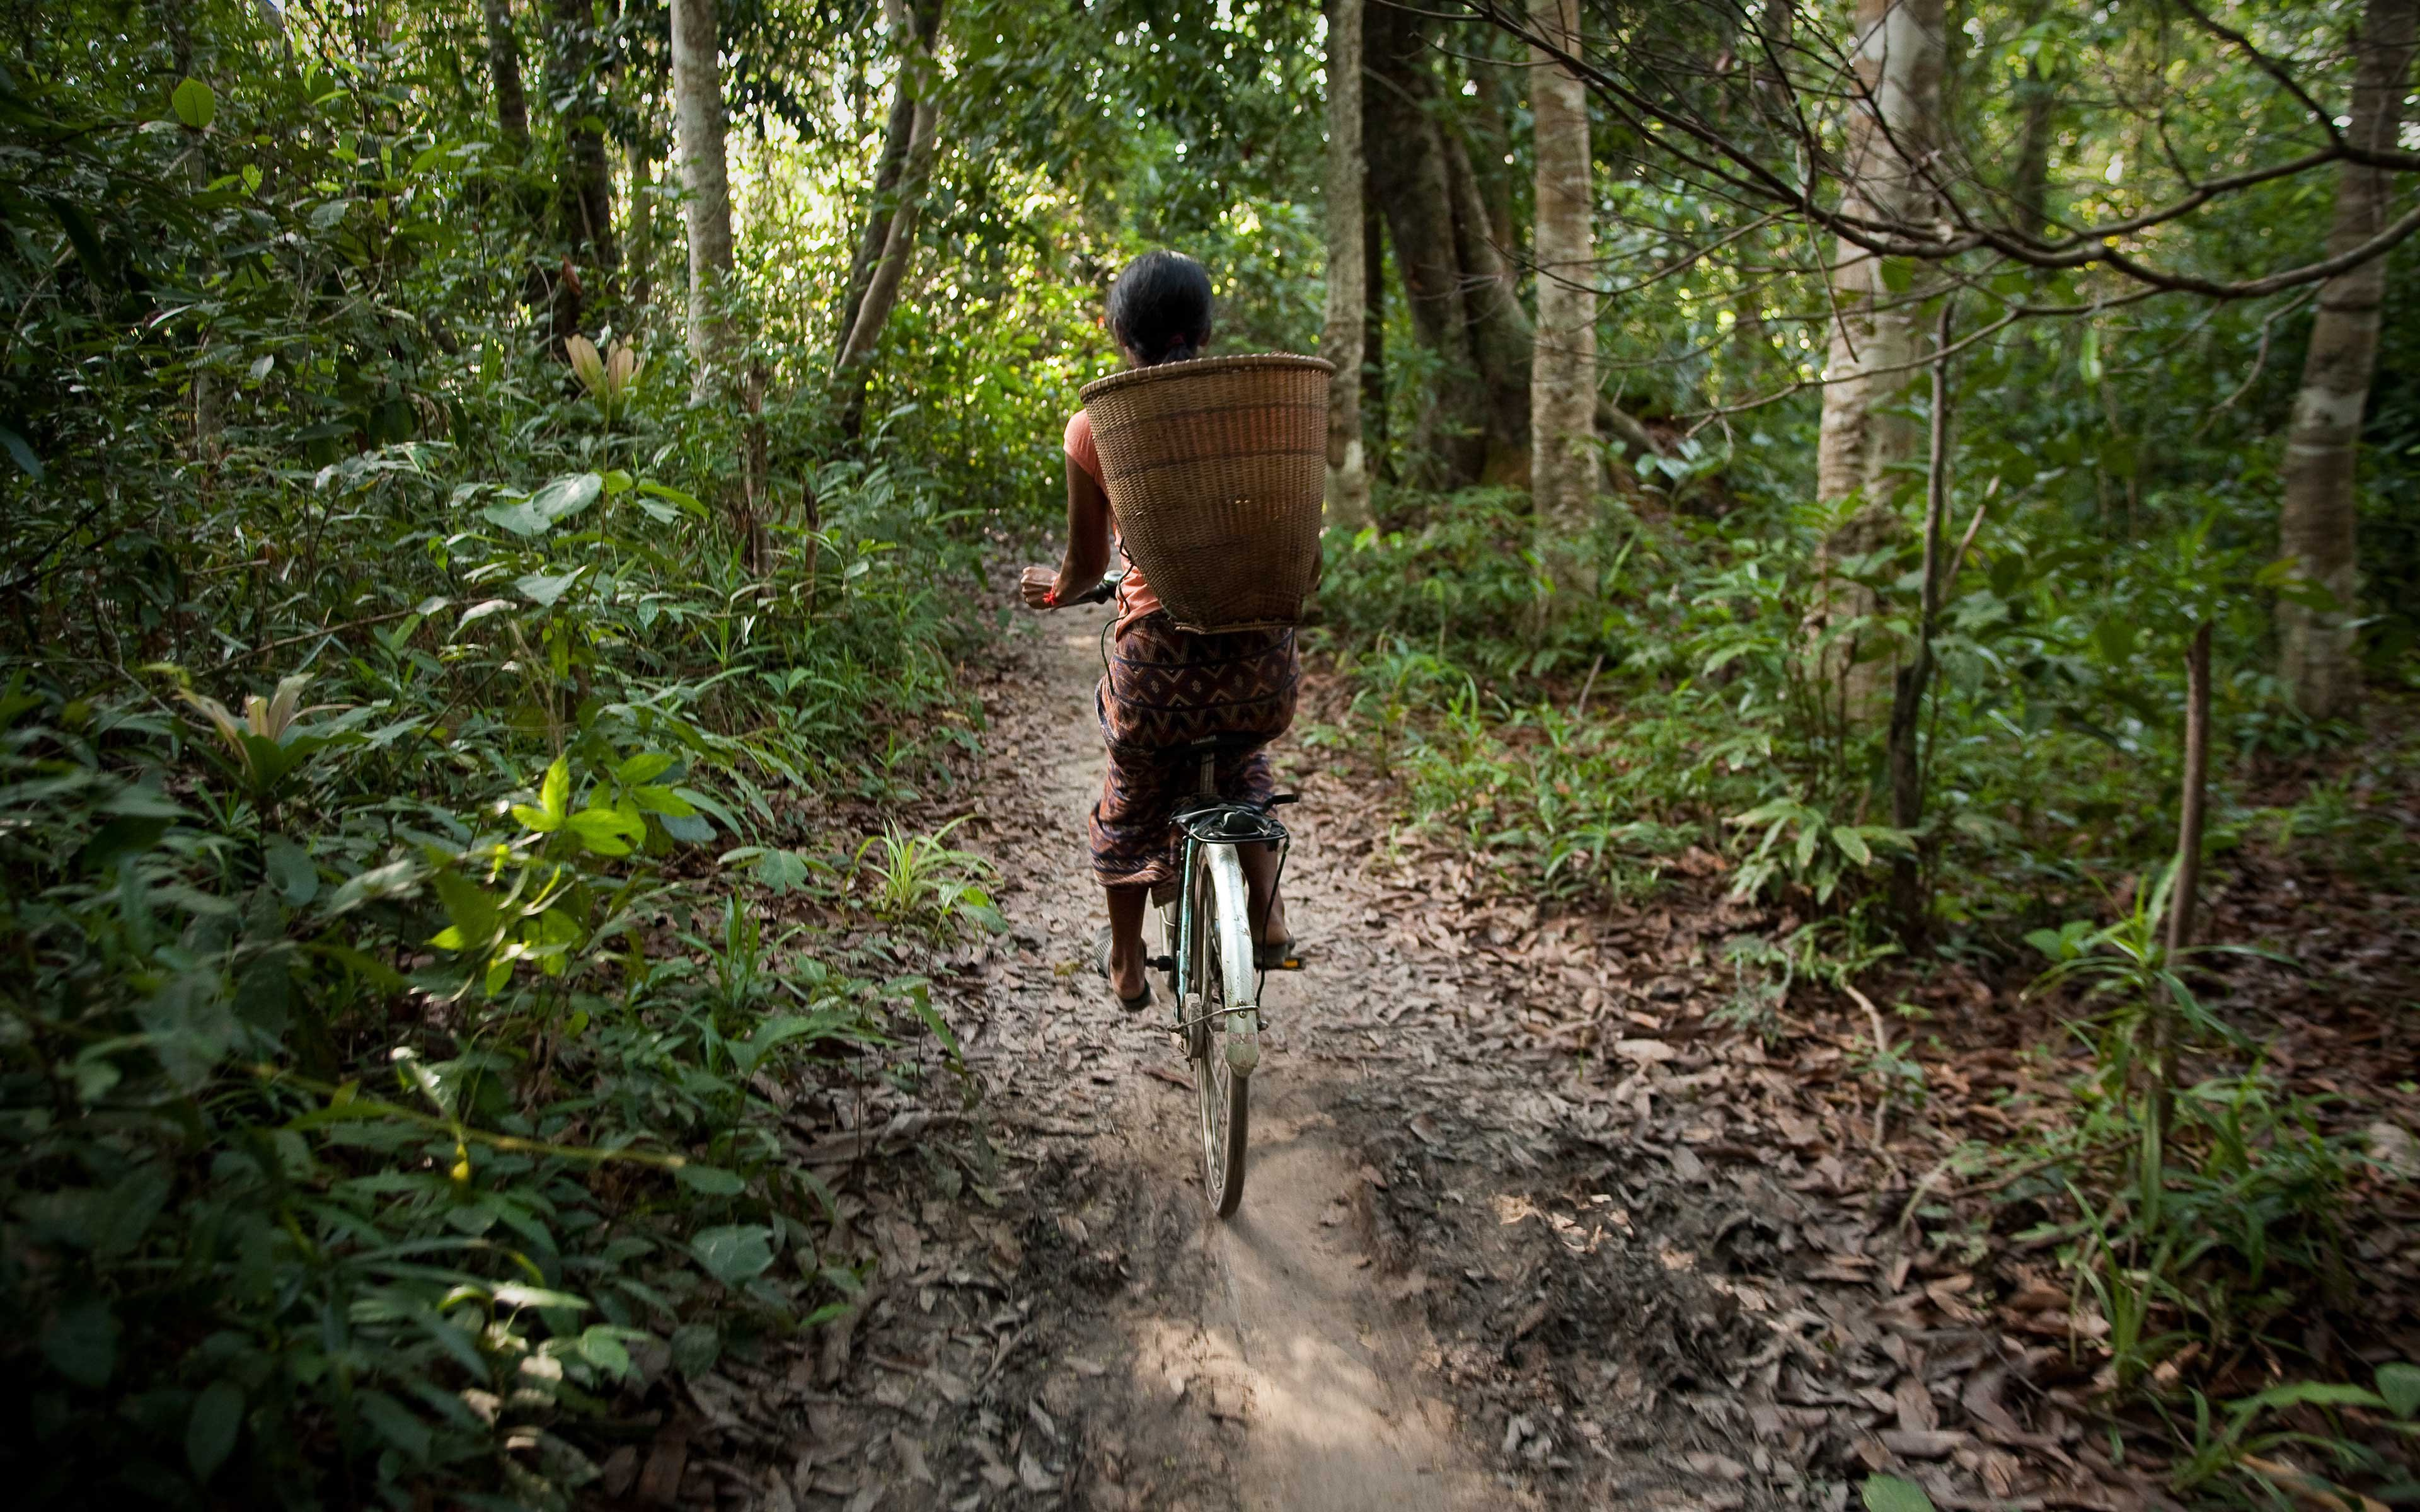 An ethnic Kaveat woman rides her bicycle through the Virachei National Forest near Cambodia's border with Laos. Even protected areas can be vulnerable to land grabs by powerful economic and political forces in Cambodia.